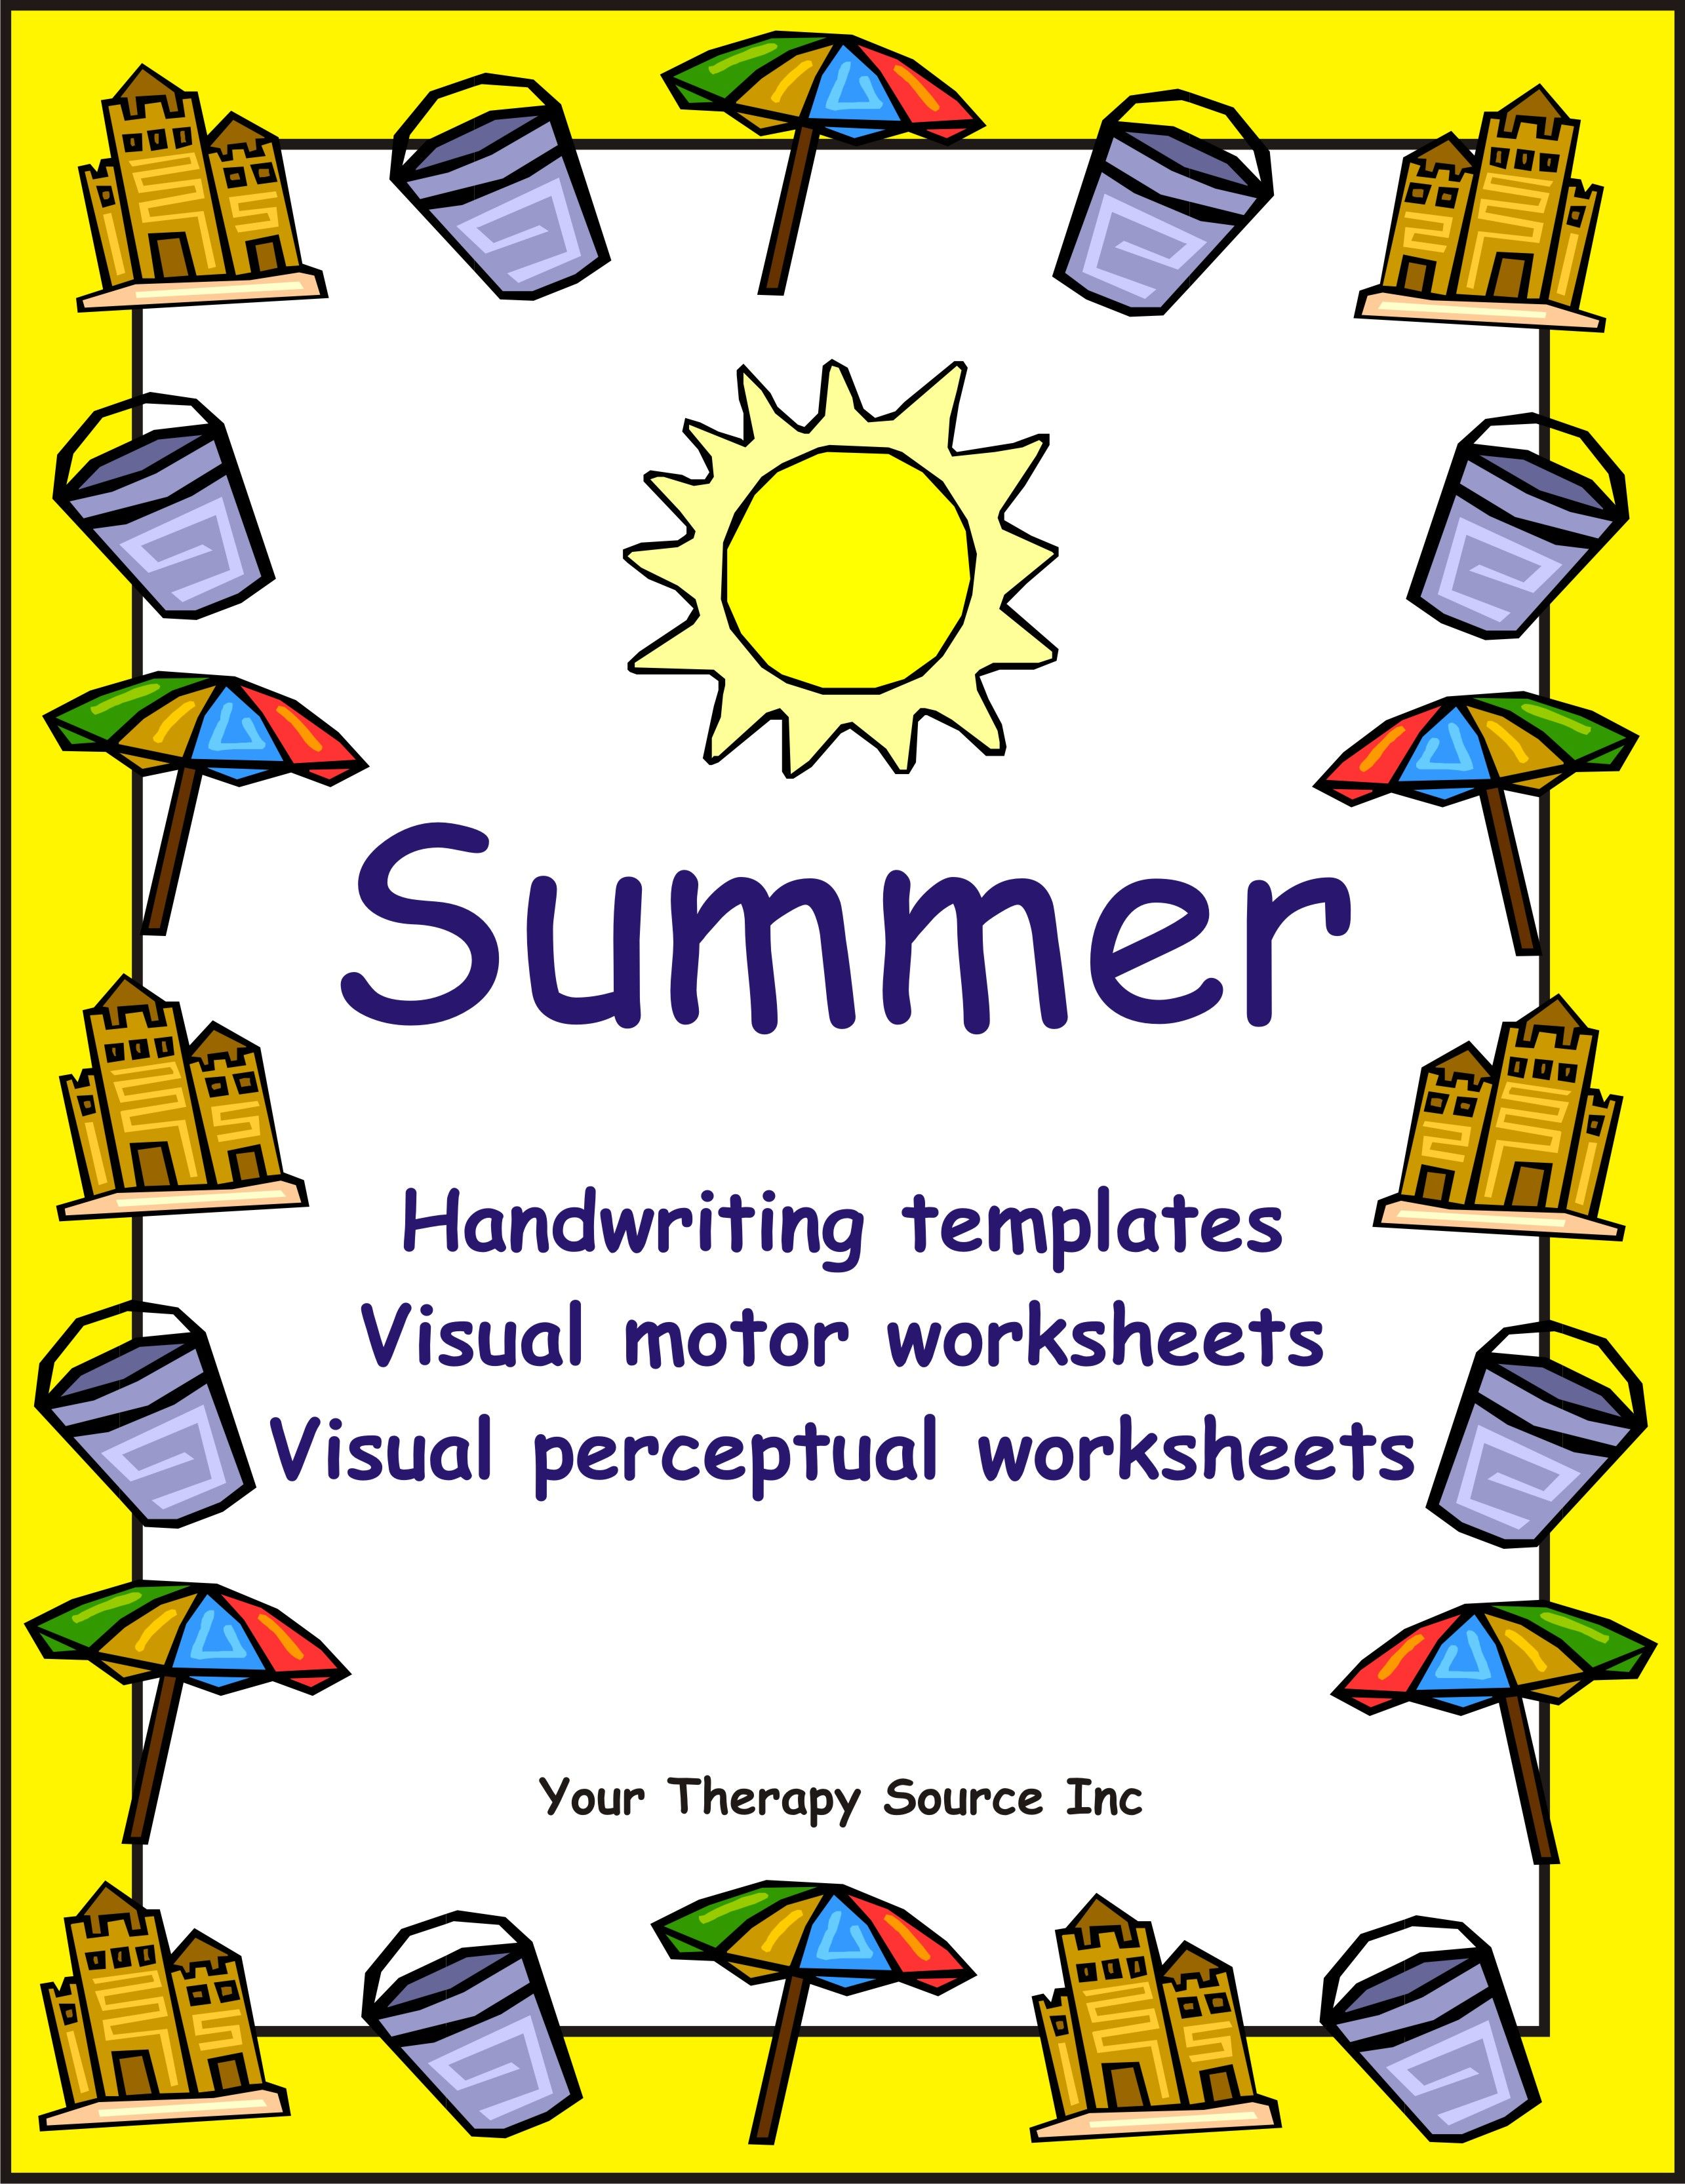 Summer Handwriting Activities Your Therapy Source Handwriting Template Handwriting Activities Improve Your Handwriting [ 3332 x 2570 Pixel ]